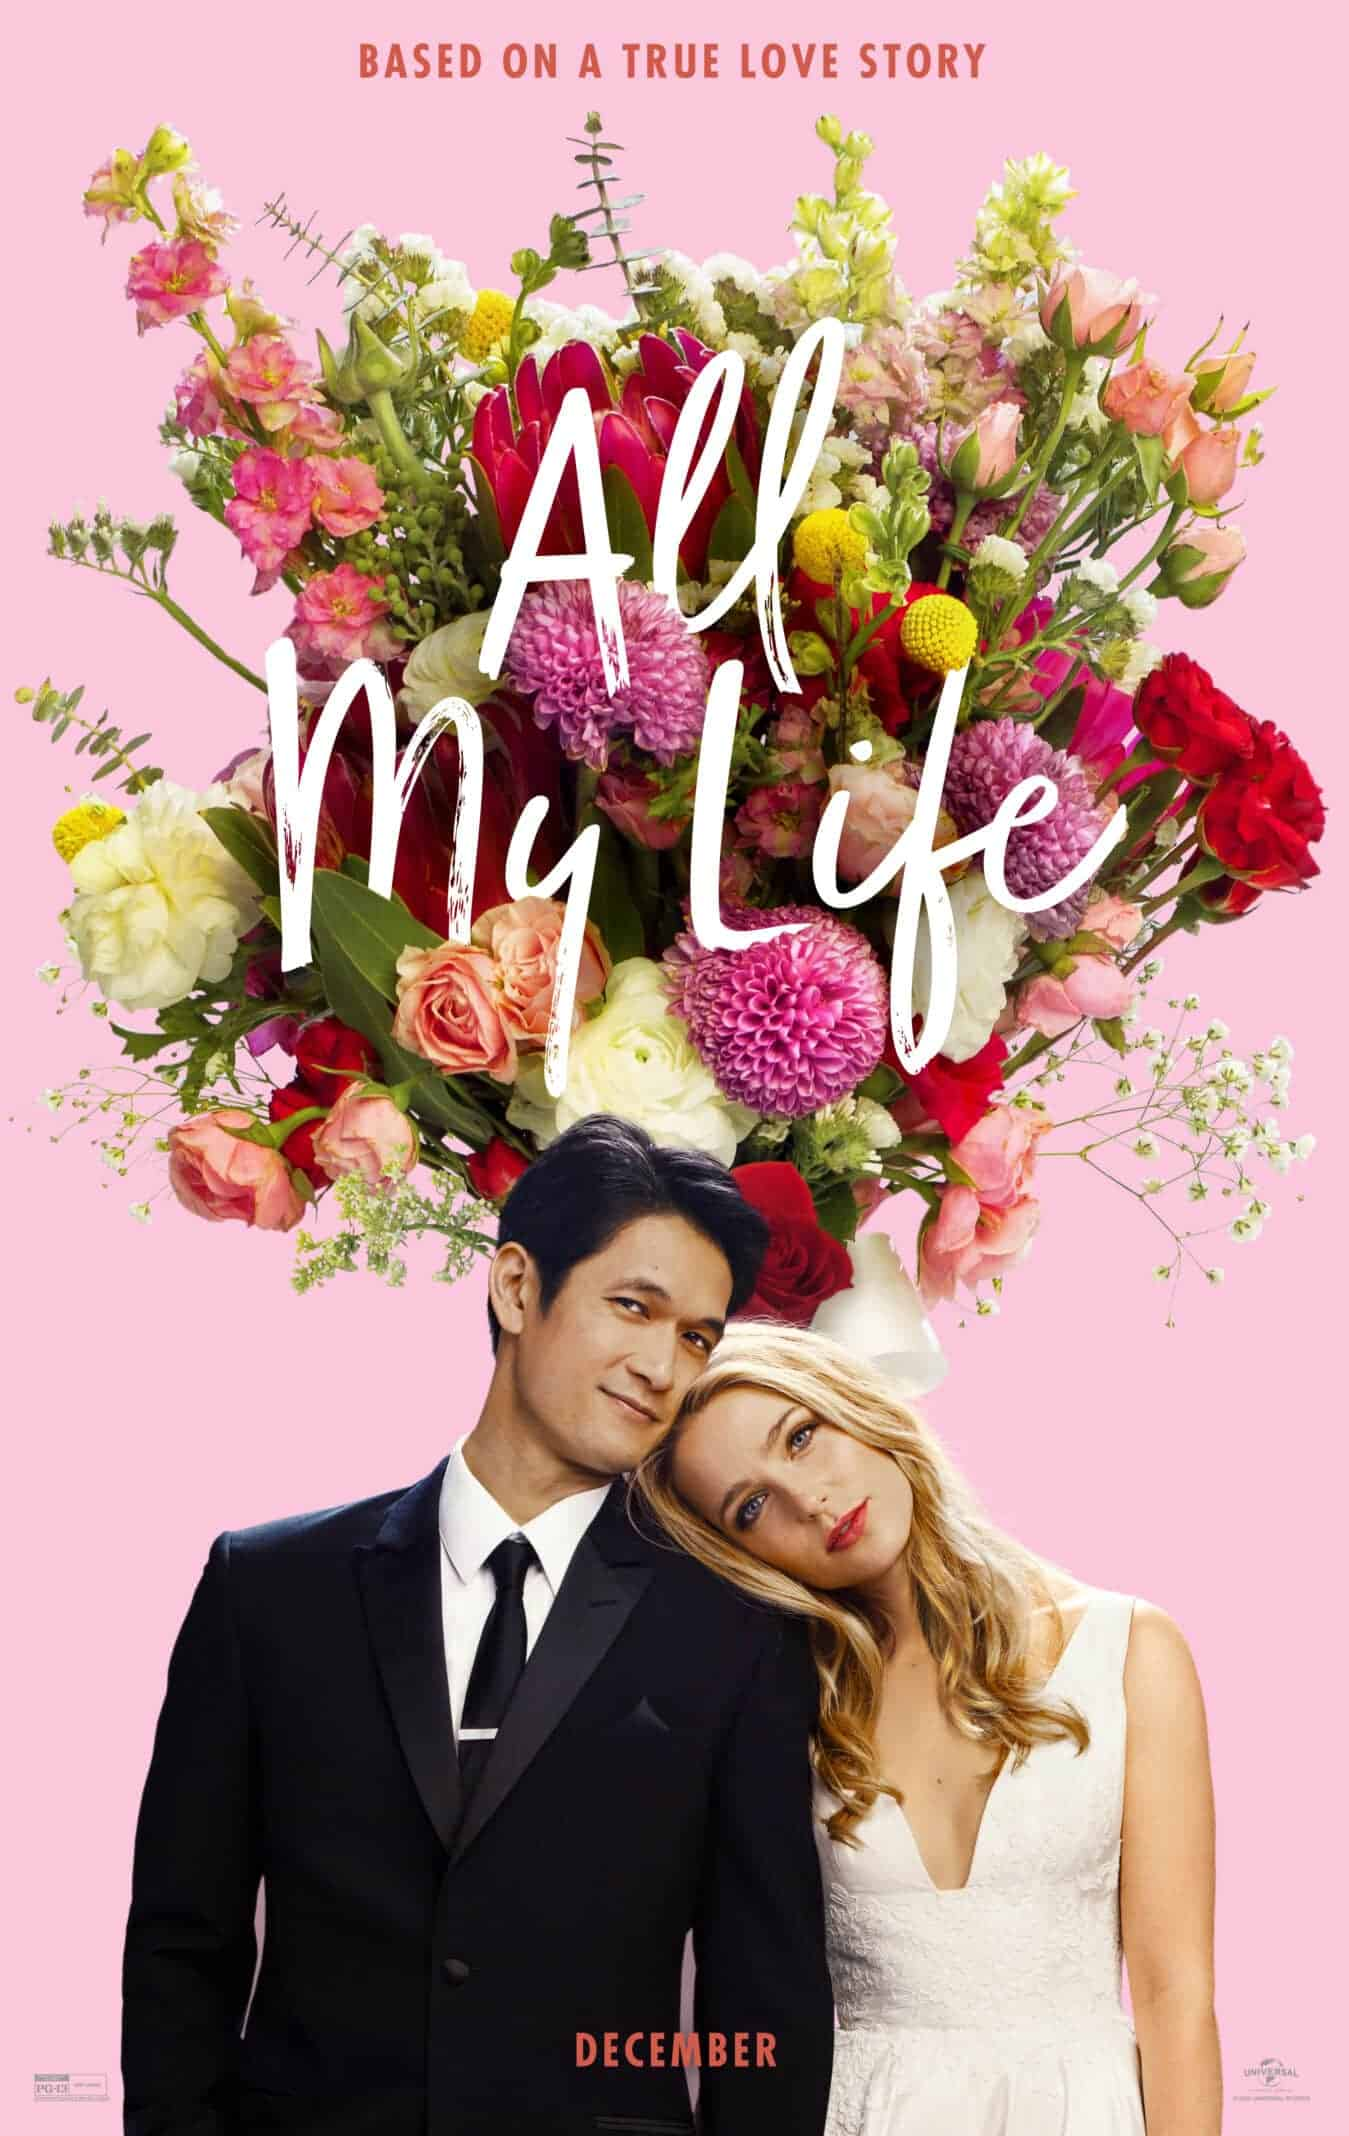 All My Life's movie poster featuring Harry Shum Jr. as Sol and Jessica Rothe as Jennifer.